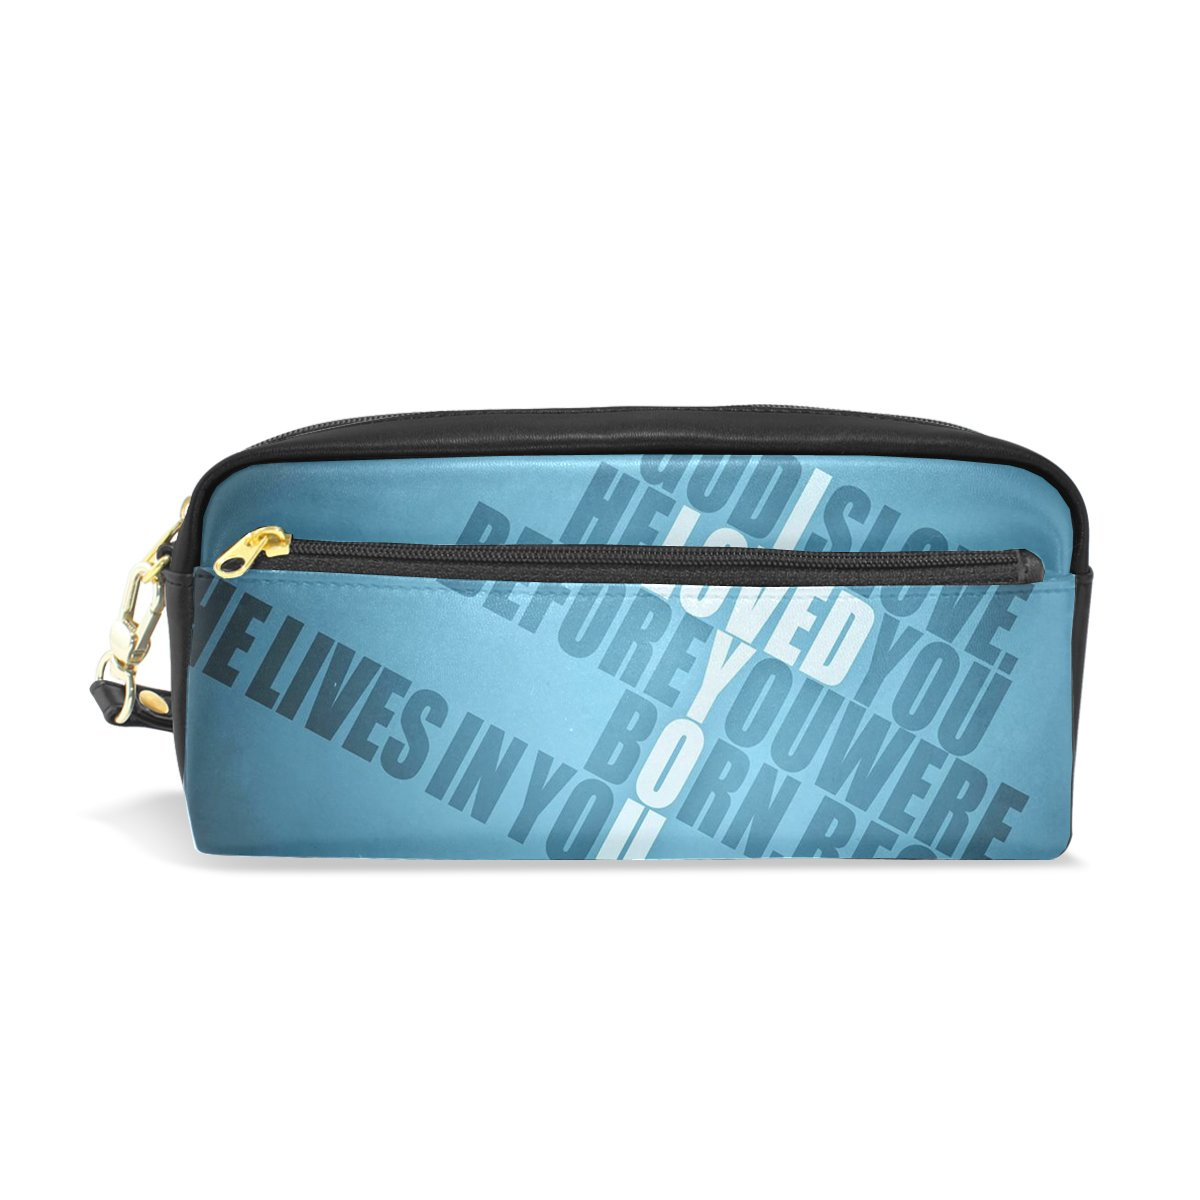 Pencil Case HMBROTHERS Stylish Art Print Christian Pattern Large Capacity Pen Bag Makeup Pouch Durable Students Stationery Two Pockets With Double Zipper by HMBROTHERS